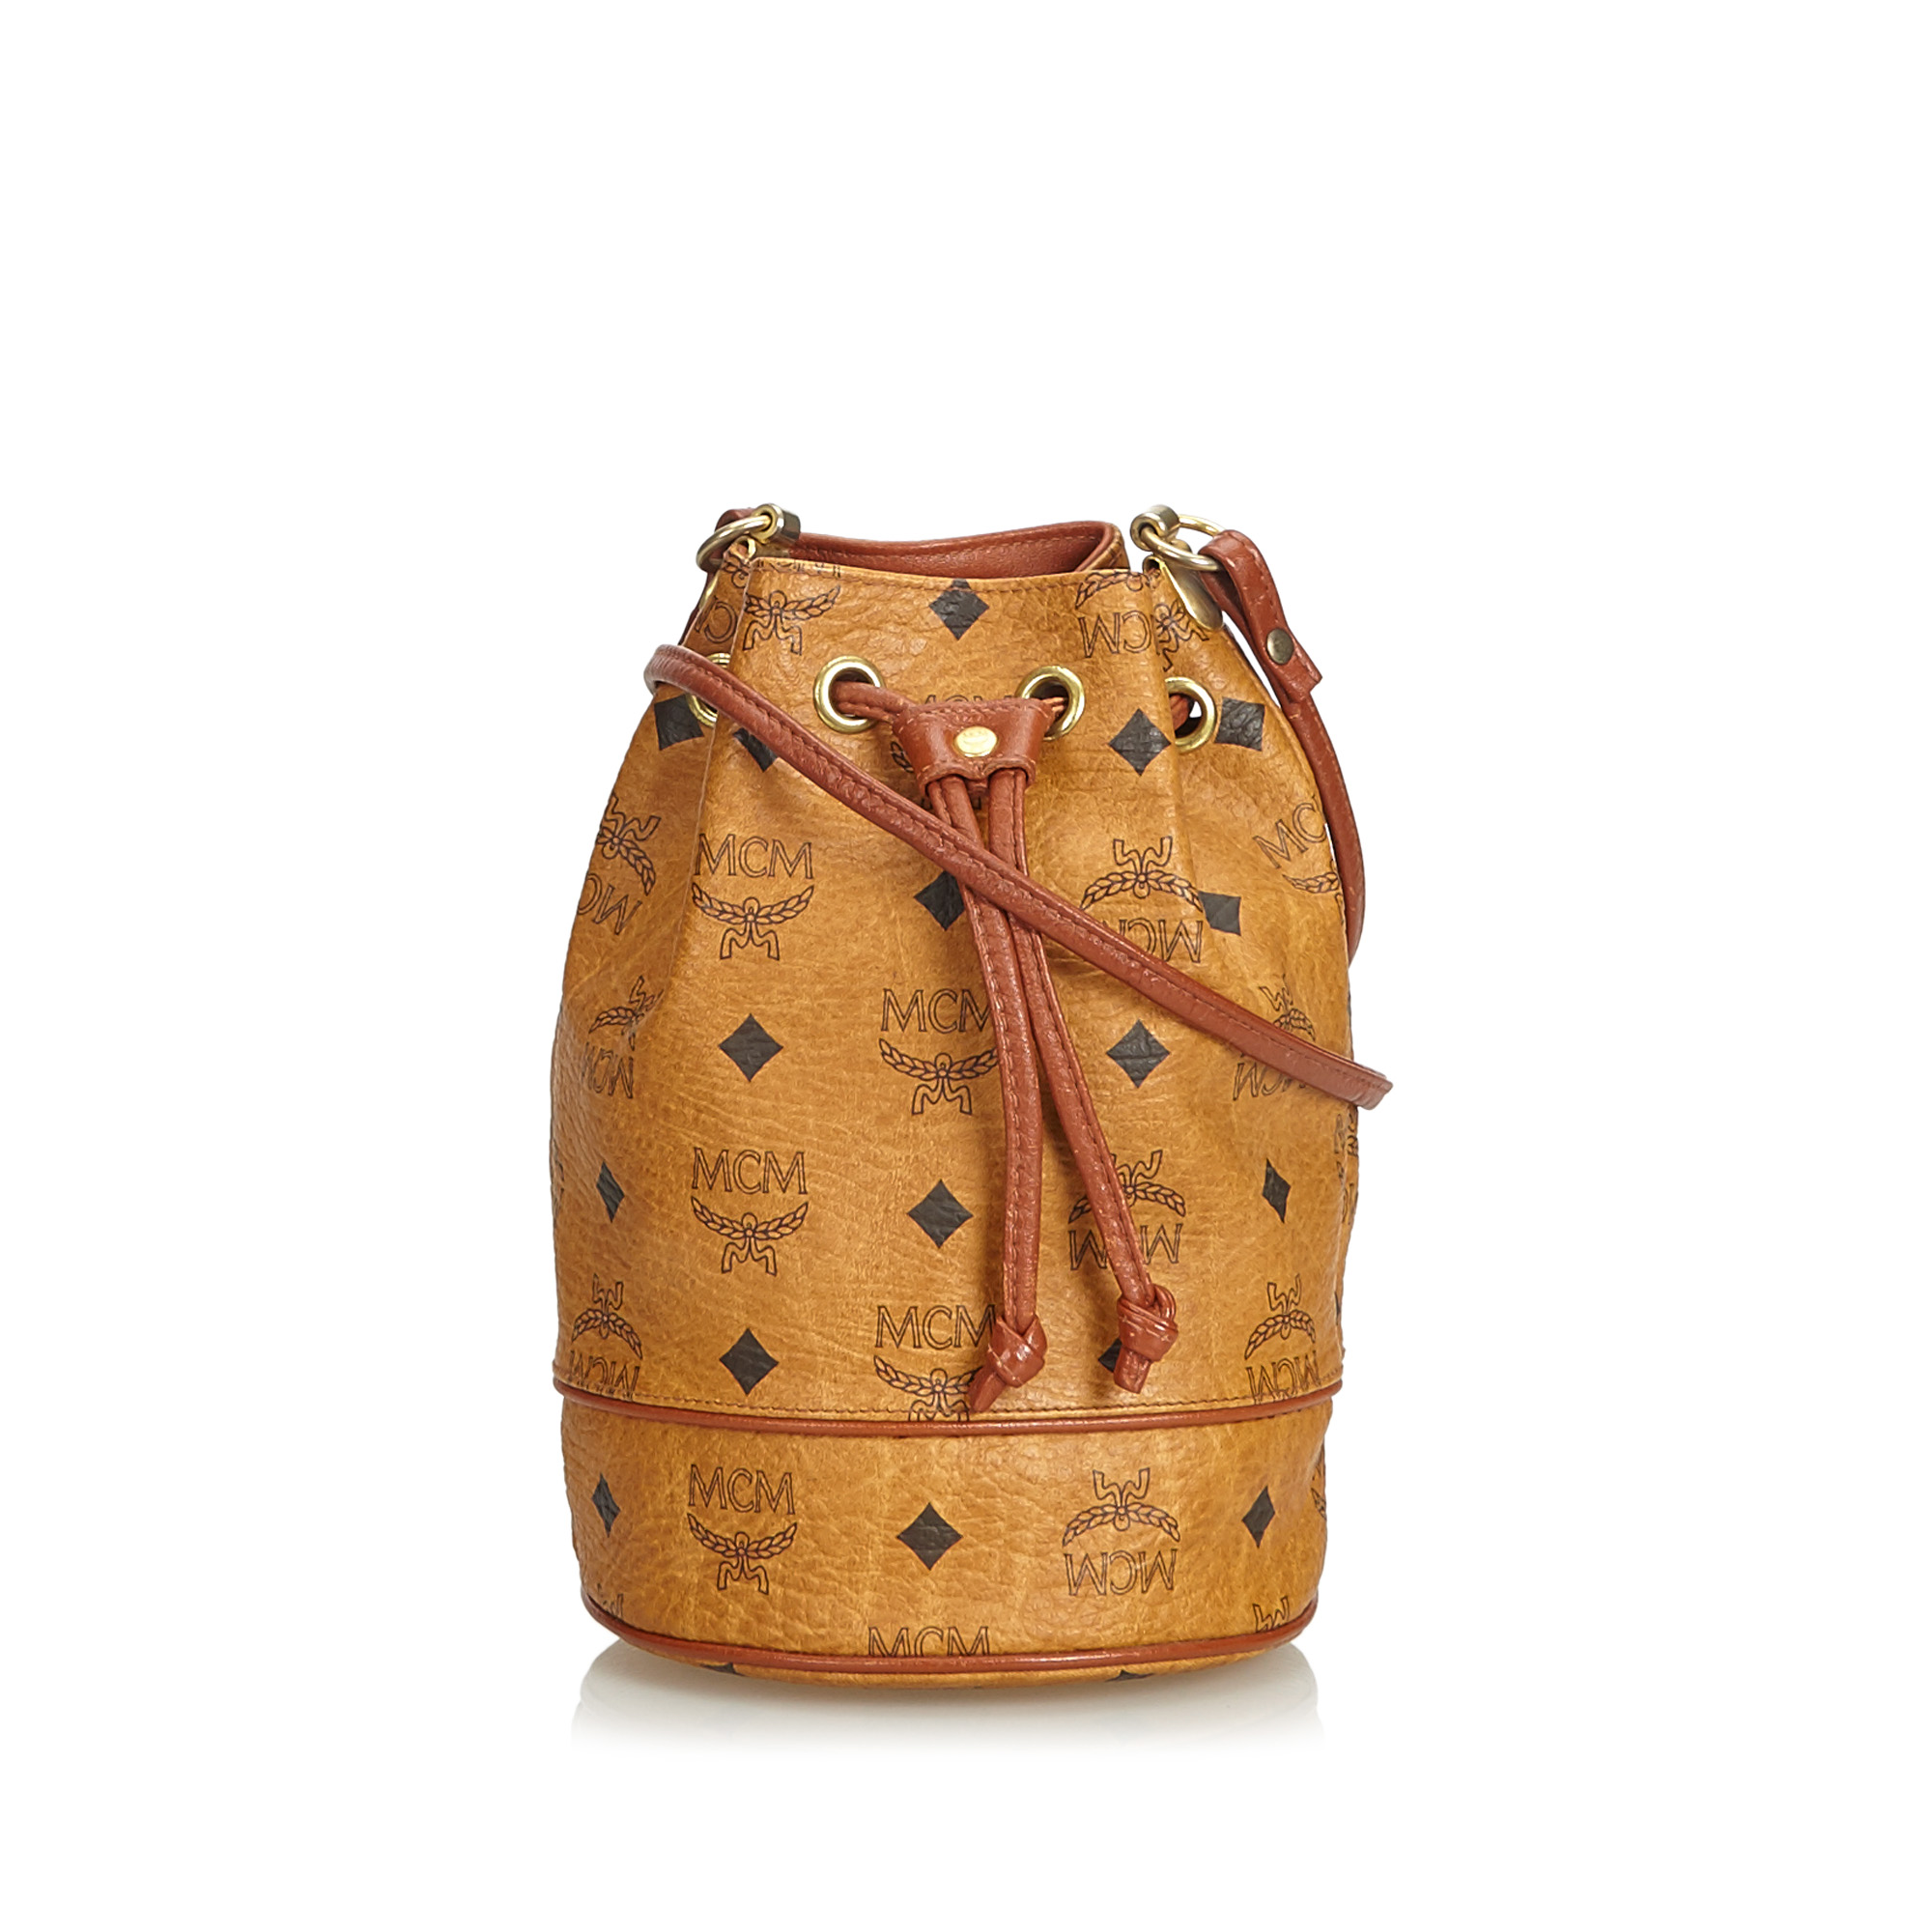 6f0f38c3f Image is loading Vintage-MCM-Brown-Others-Leather-Visetos-Drawstring-Bucket-